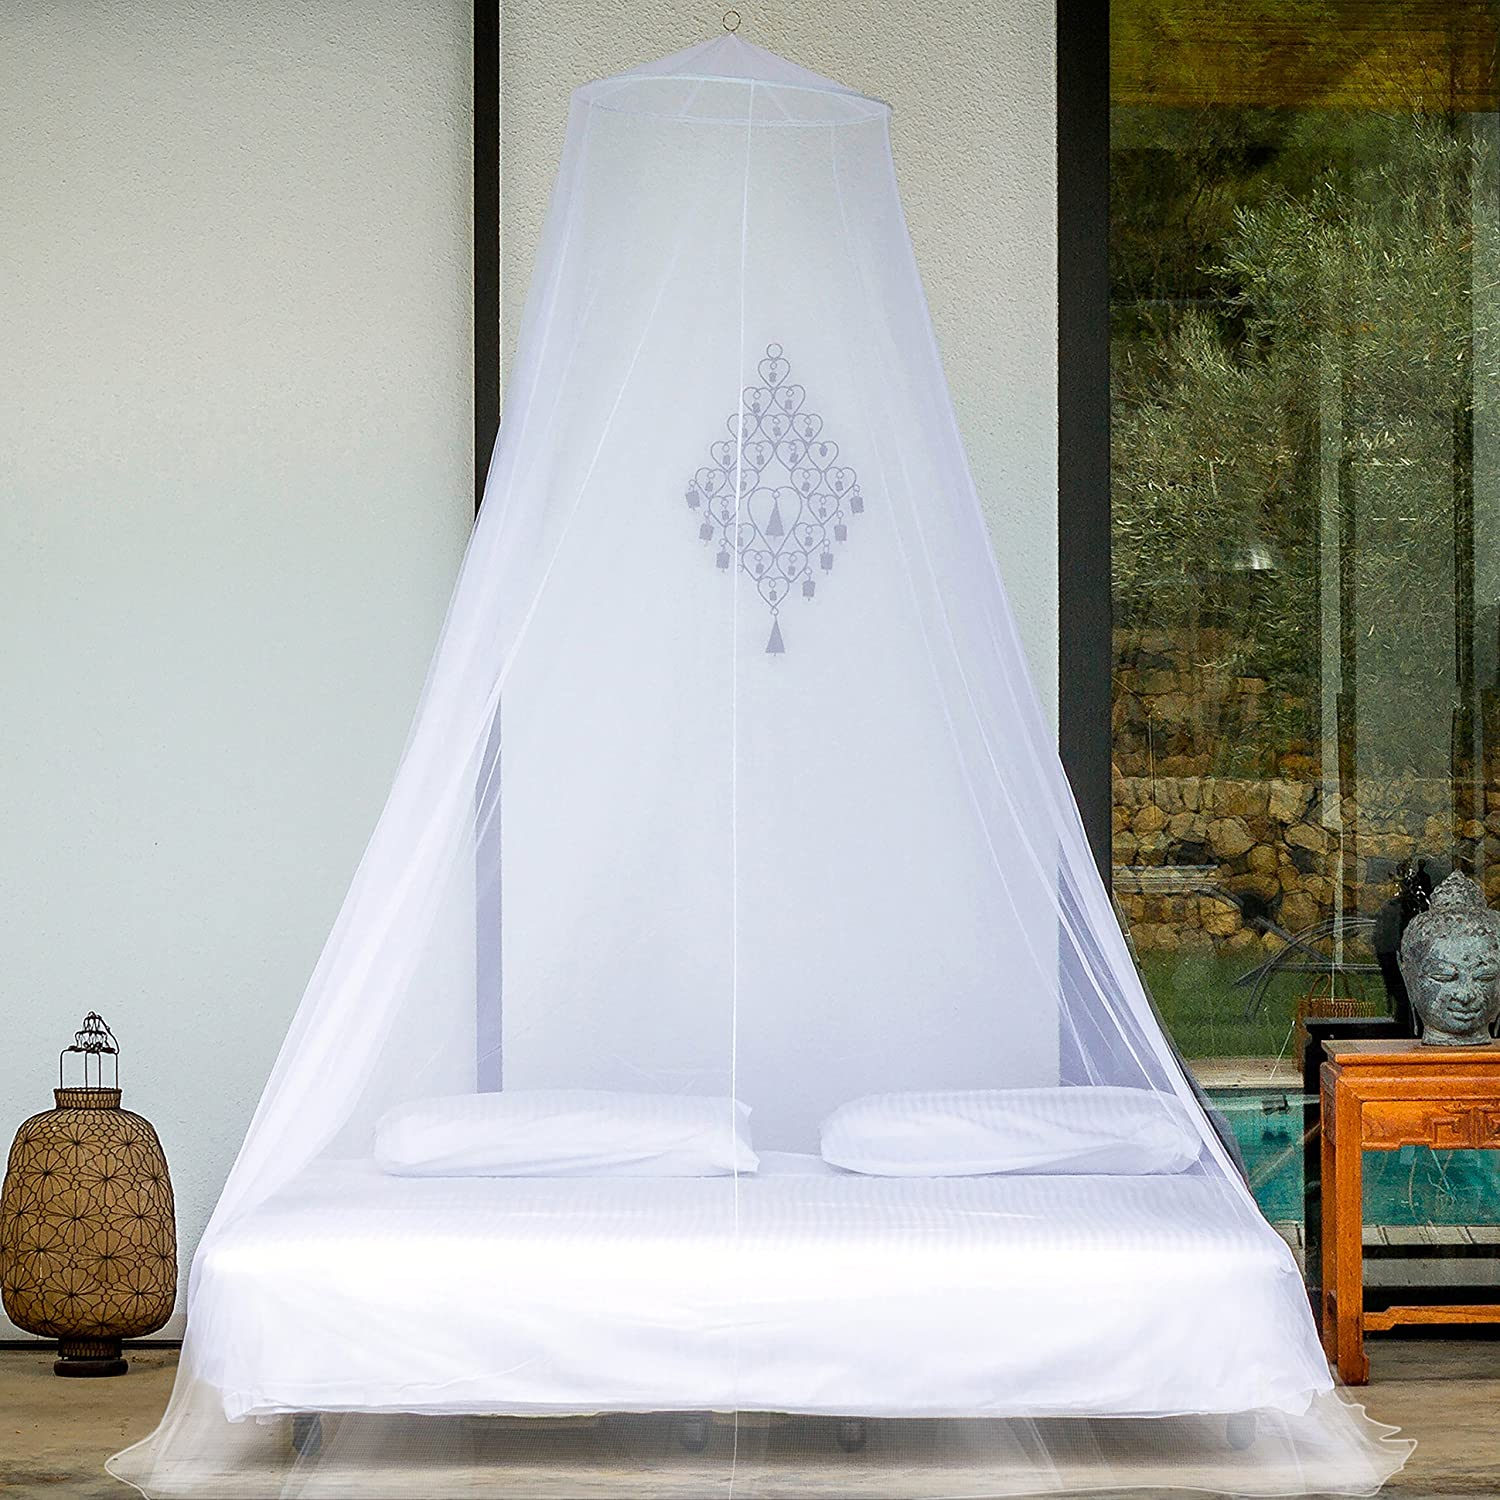 PREMIUM MOSQUITO NET for Twin, Queen and King Size Bed, Large Mosquito  Netting Curtains, Canopy for Bed, Round Insect Fly Screen, Insect  Protection ...